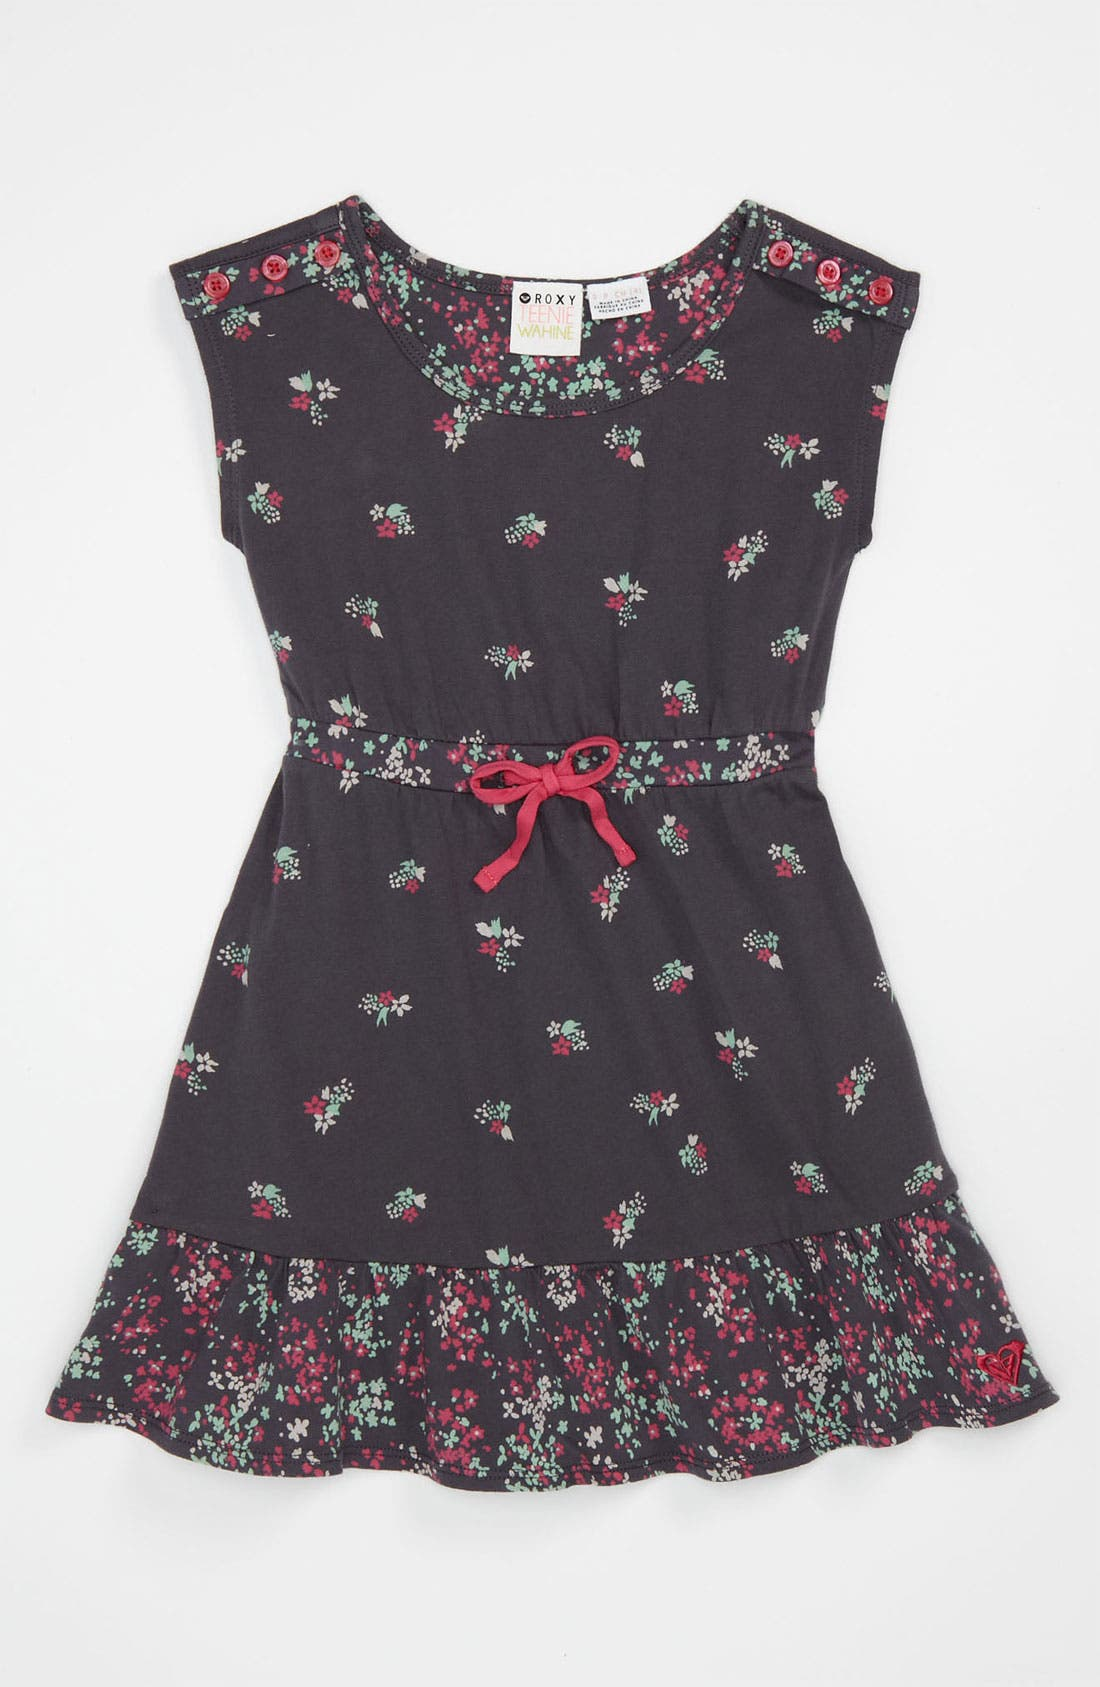 Main Image - Roxy 'Tinsel' Floral Dress (Little Girls)